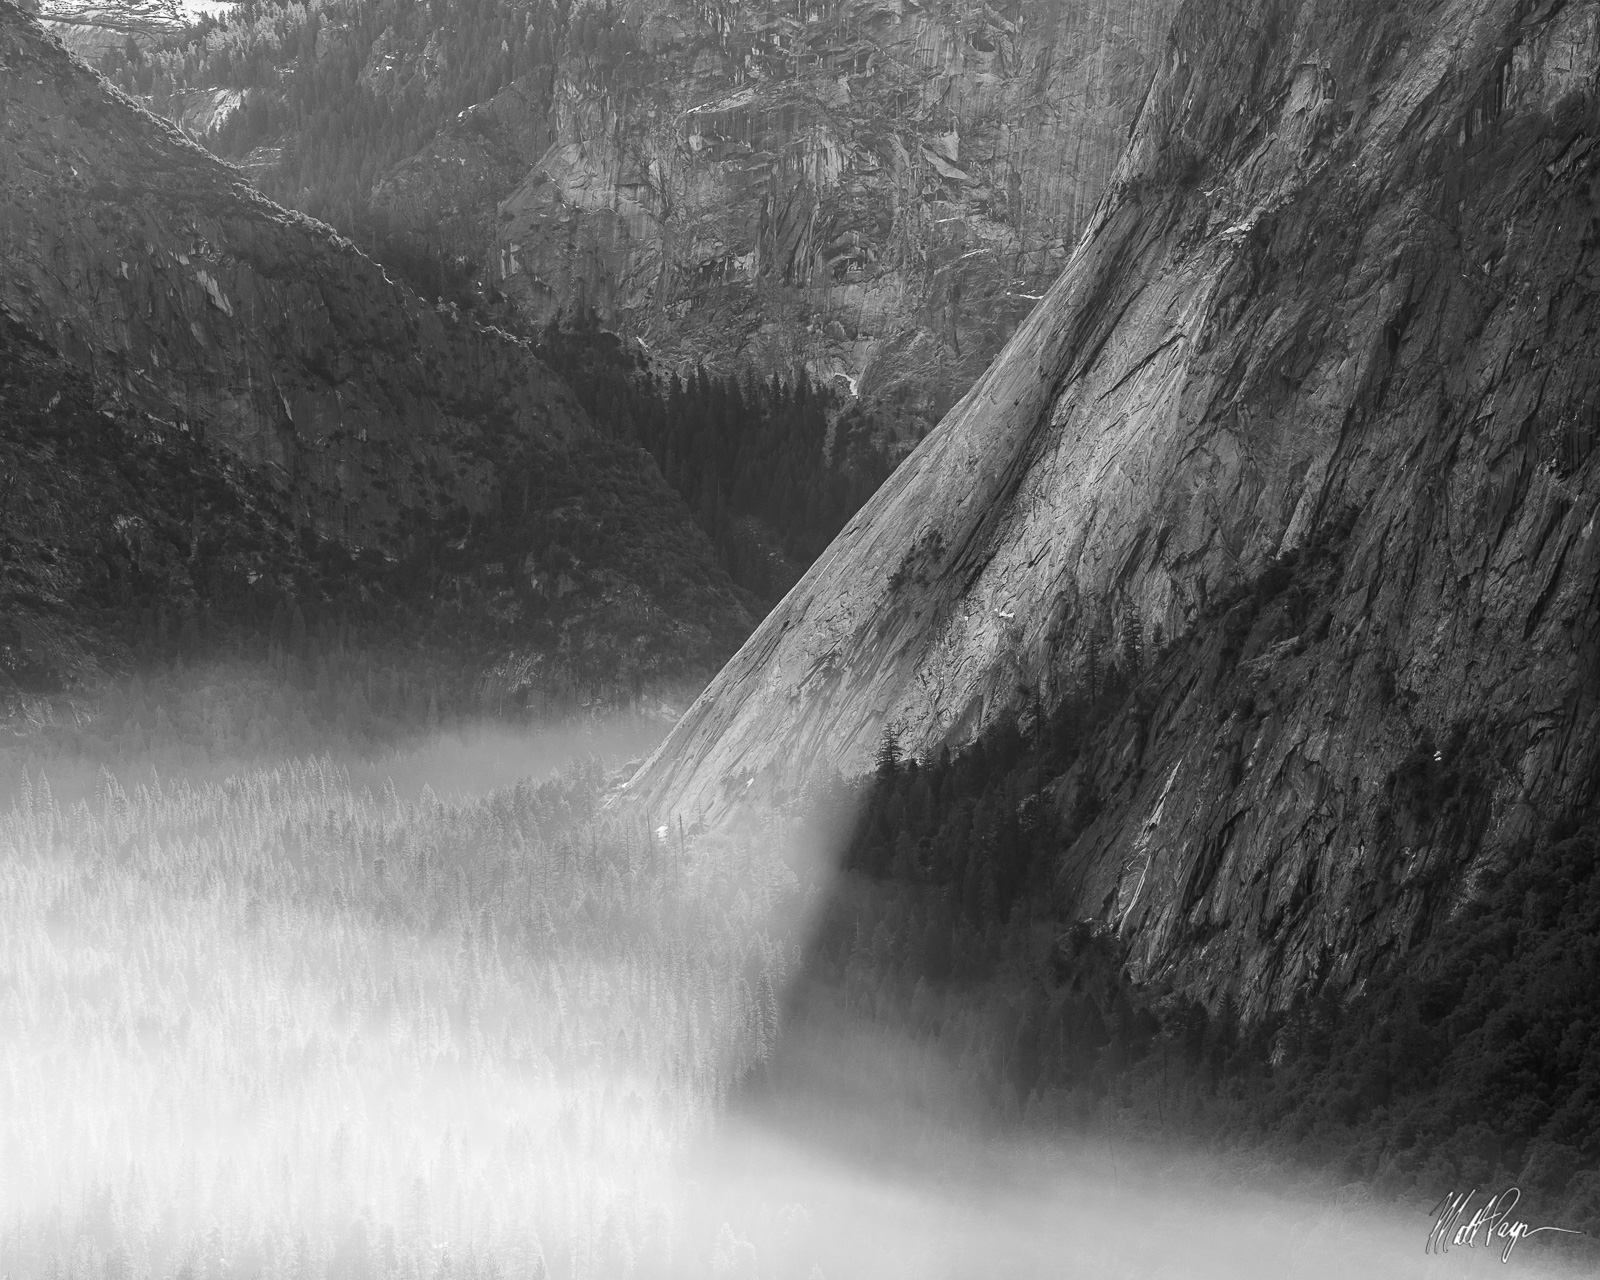 Black and White, Smoke, Yosemite National Park, granite, photo